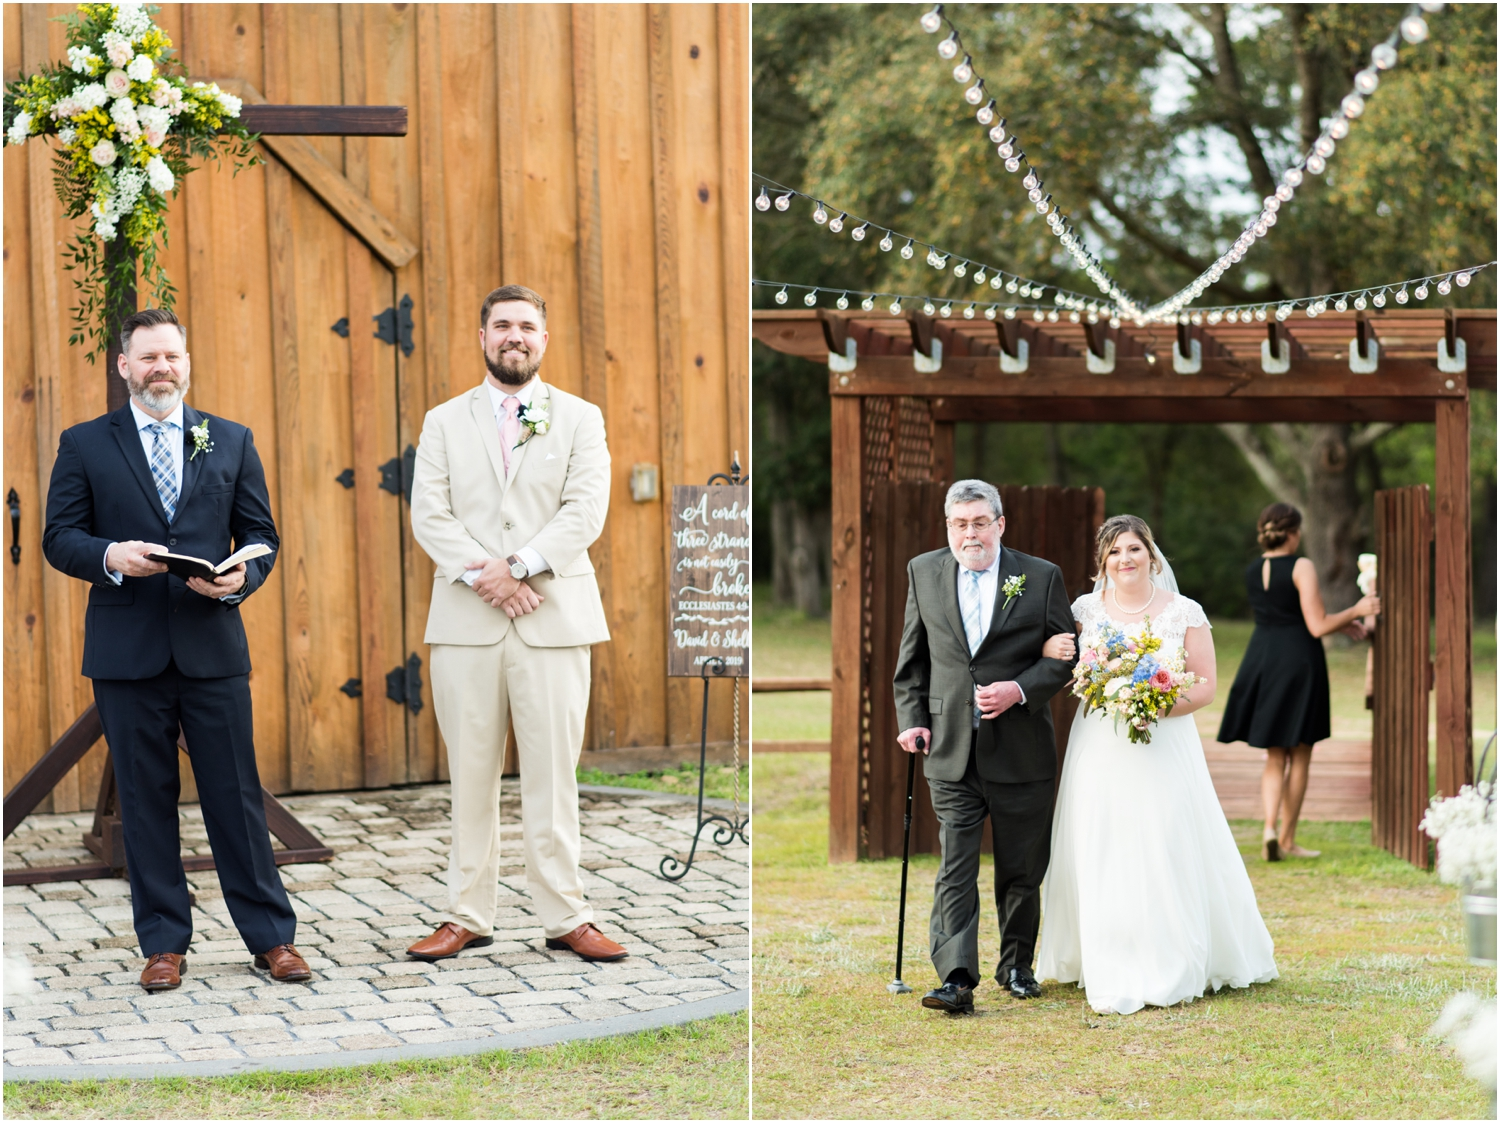 Sowell Farms Milton Florida Rustic Woodsy Barn Wedding Photographer ceremony first look